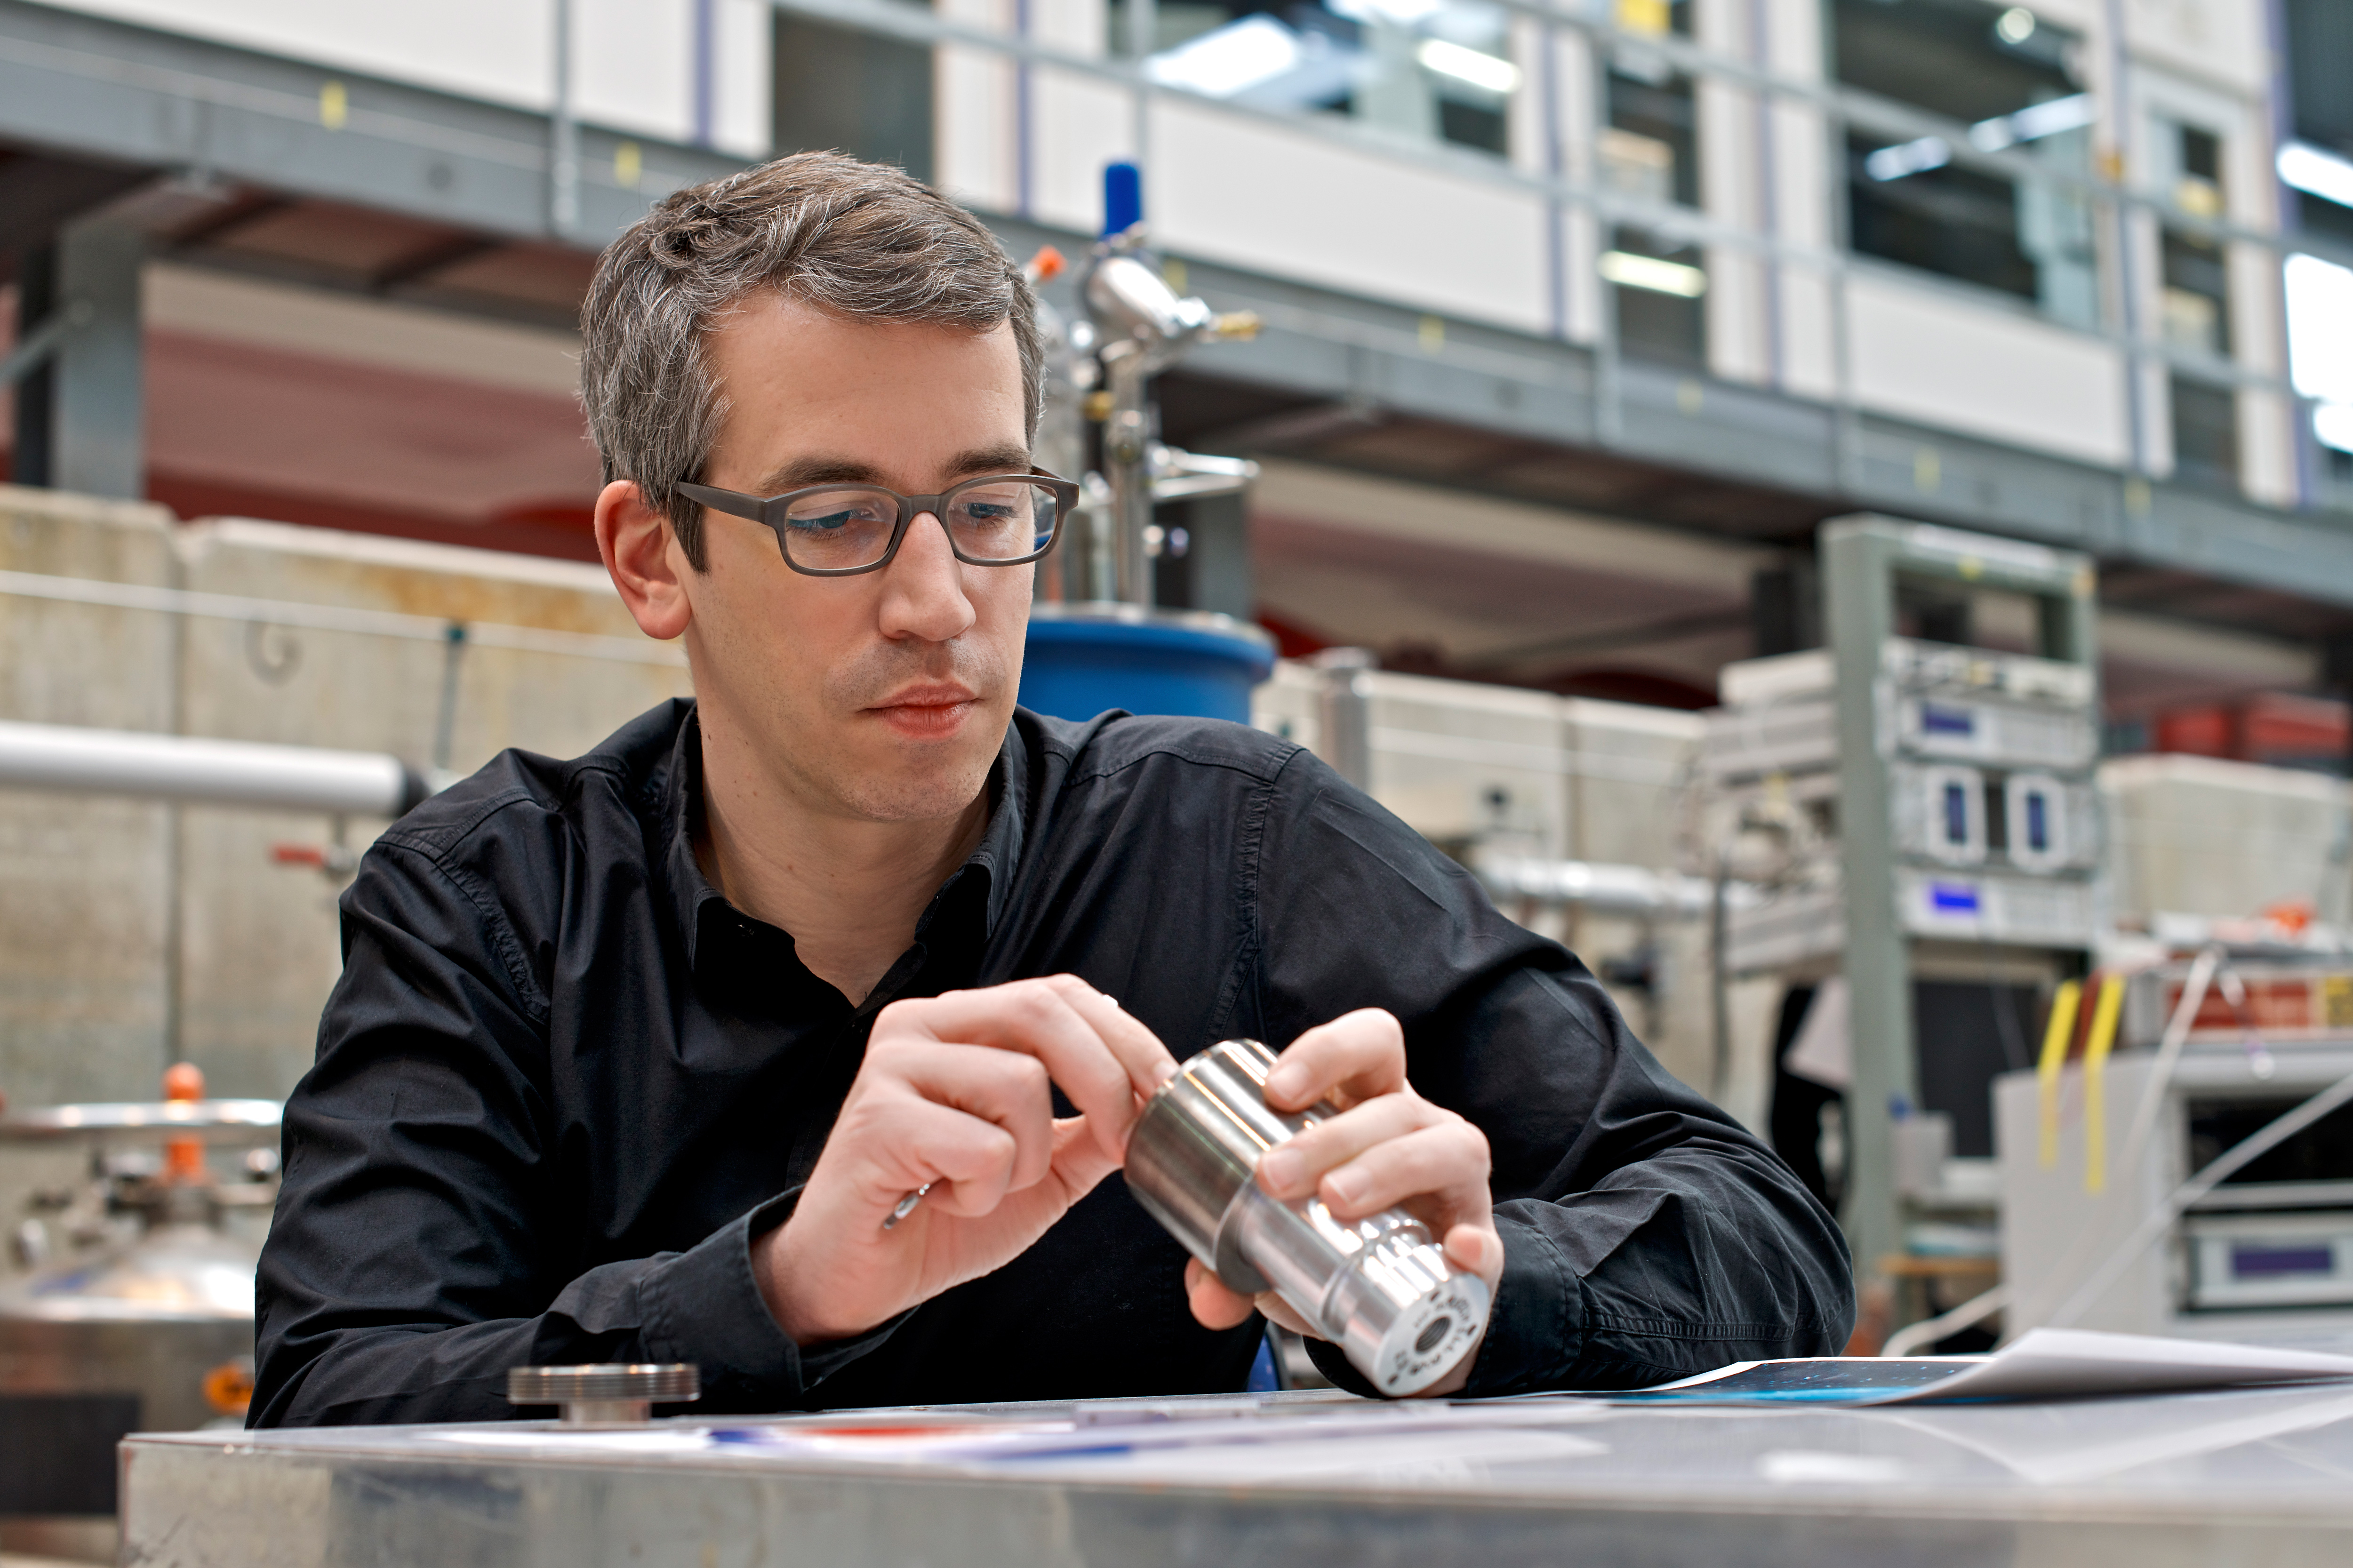 Christian Rüegg from the Paul Scherrer Institute preparing a pressure cell for a neutron scattering experiment. The pressure is applied by compressed helium. (Photo: Paul Scherrer Institute/Markus Fischer)